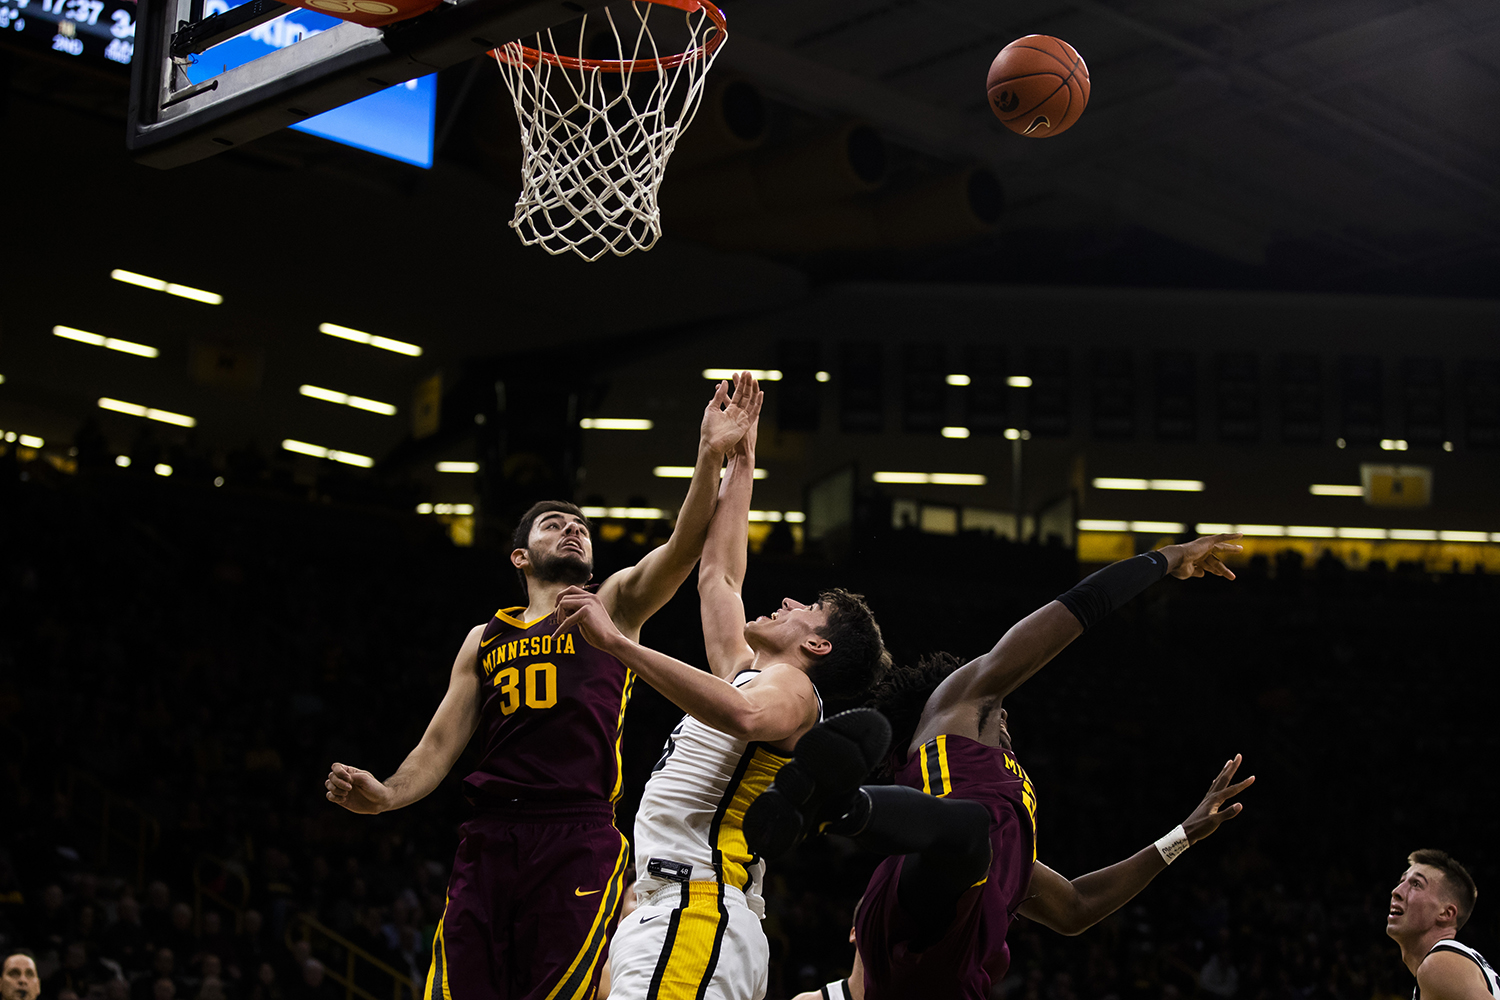 Iowa center Luka Garza jumps for the ball during the men's basketball game against Minnesota at Carver-Hawkeye Arena on Monday, December 9, 2019. The Hawkeyes defeated the Gophers 72-52.